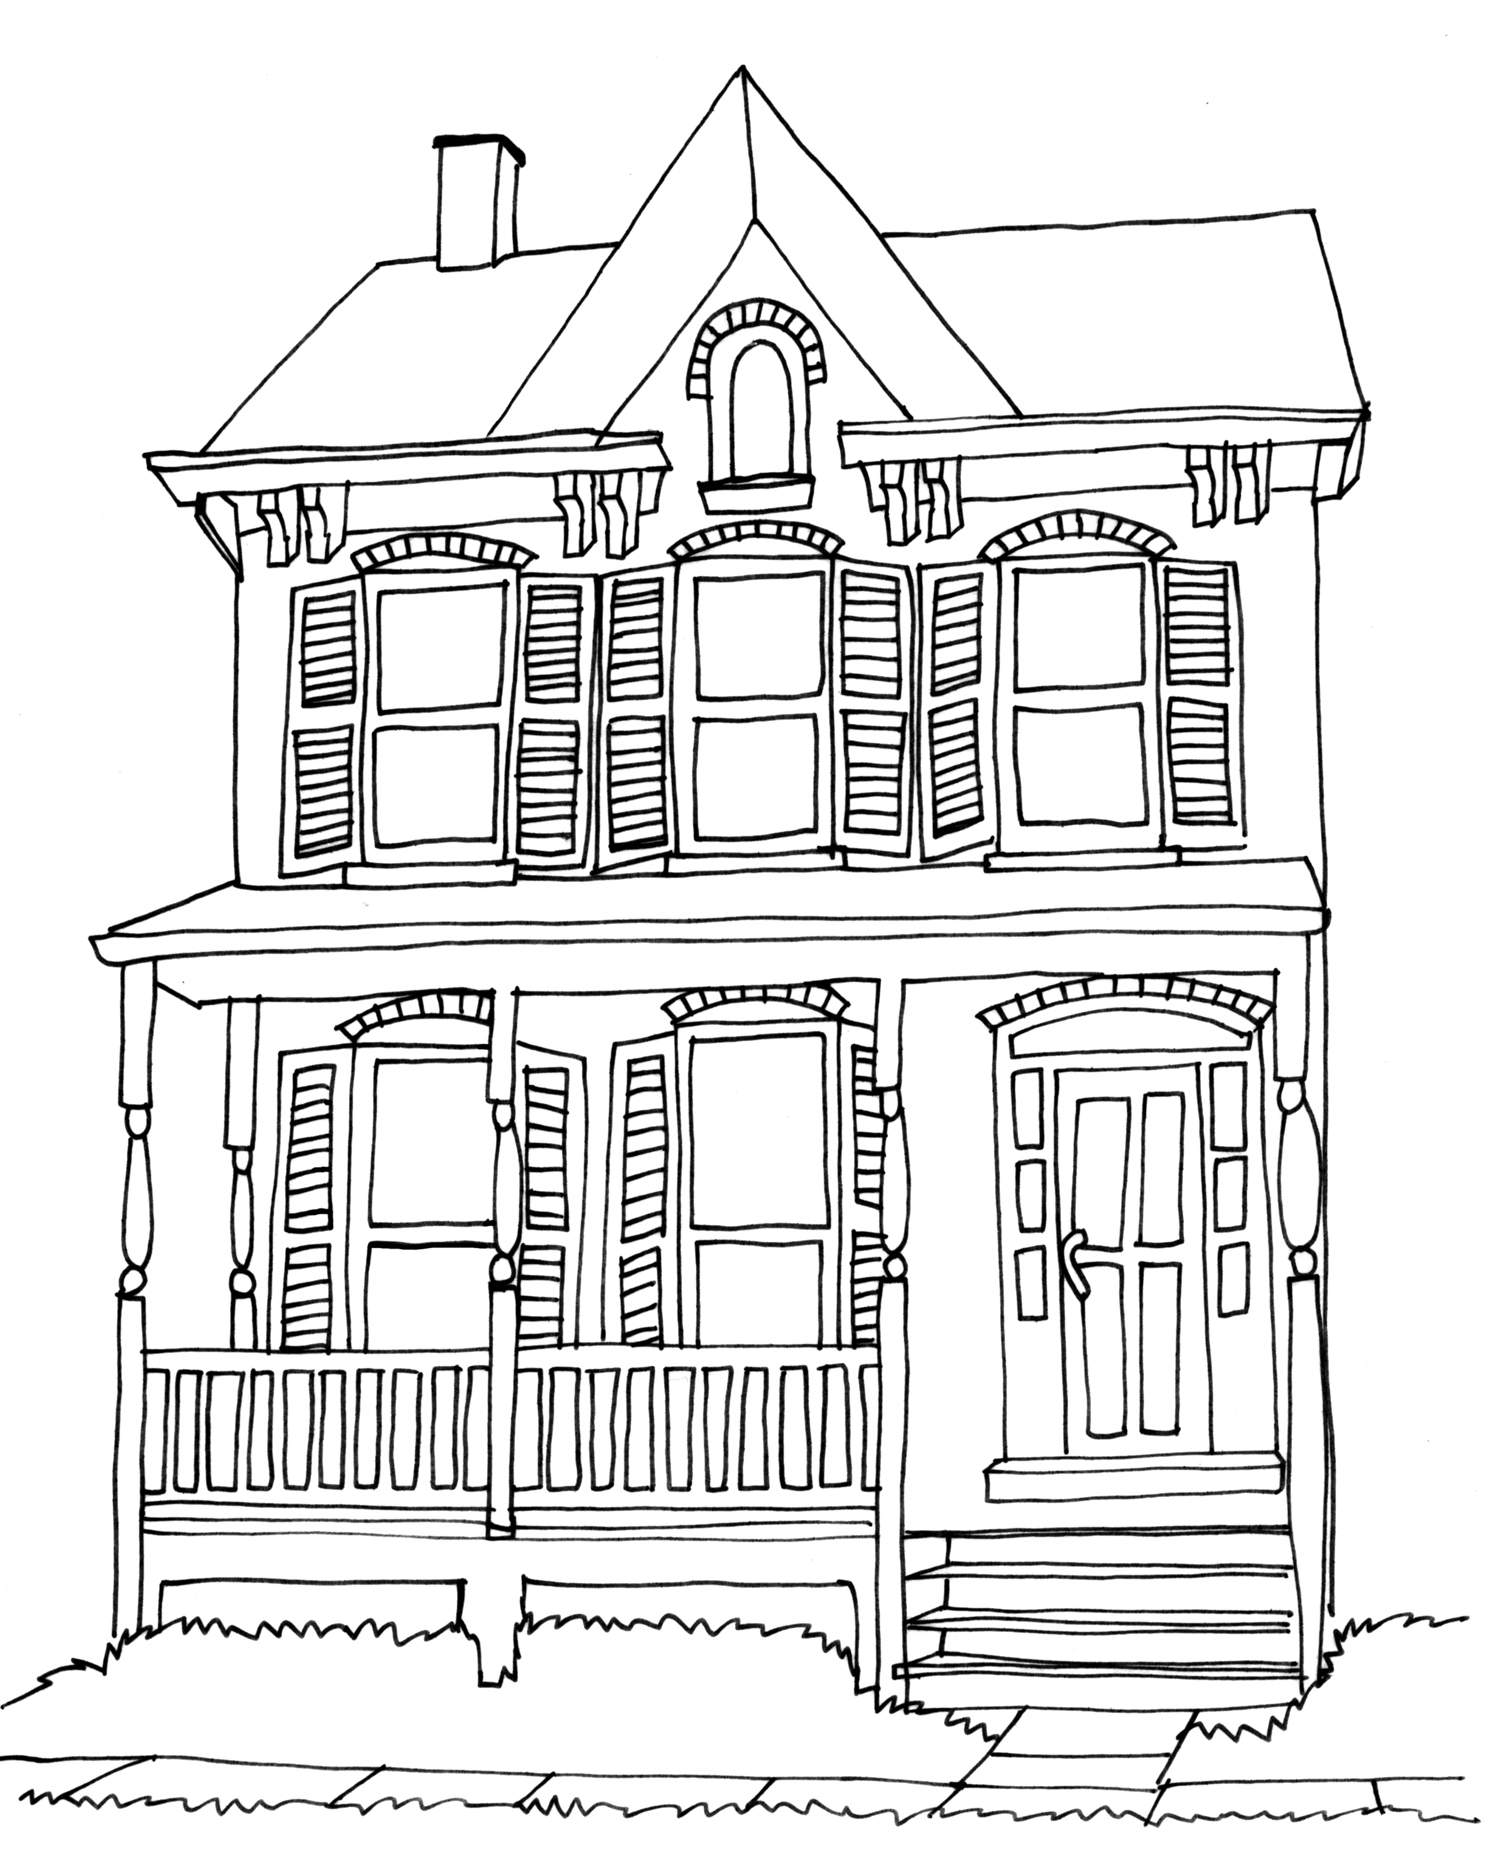 Line Drawing Of Your House : White house line drawing at getdrawings free for